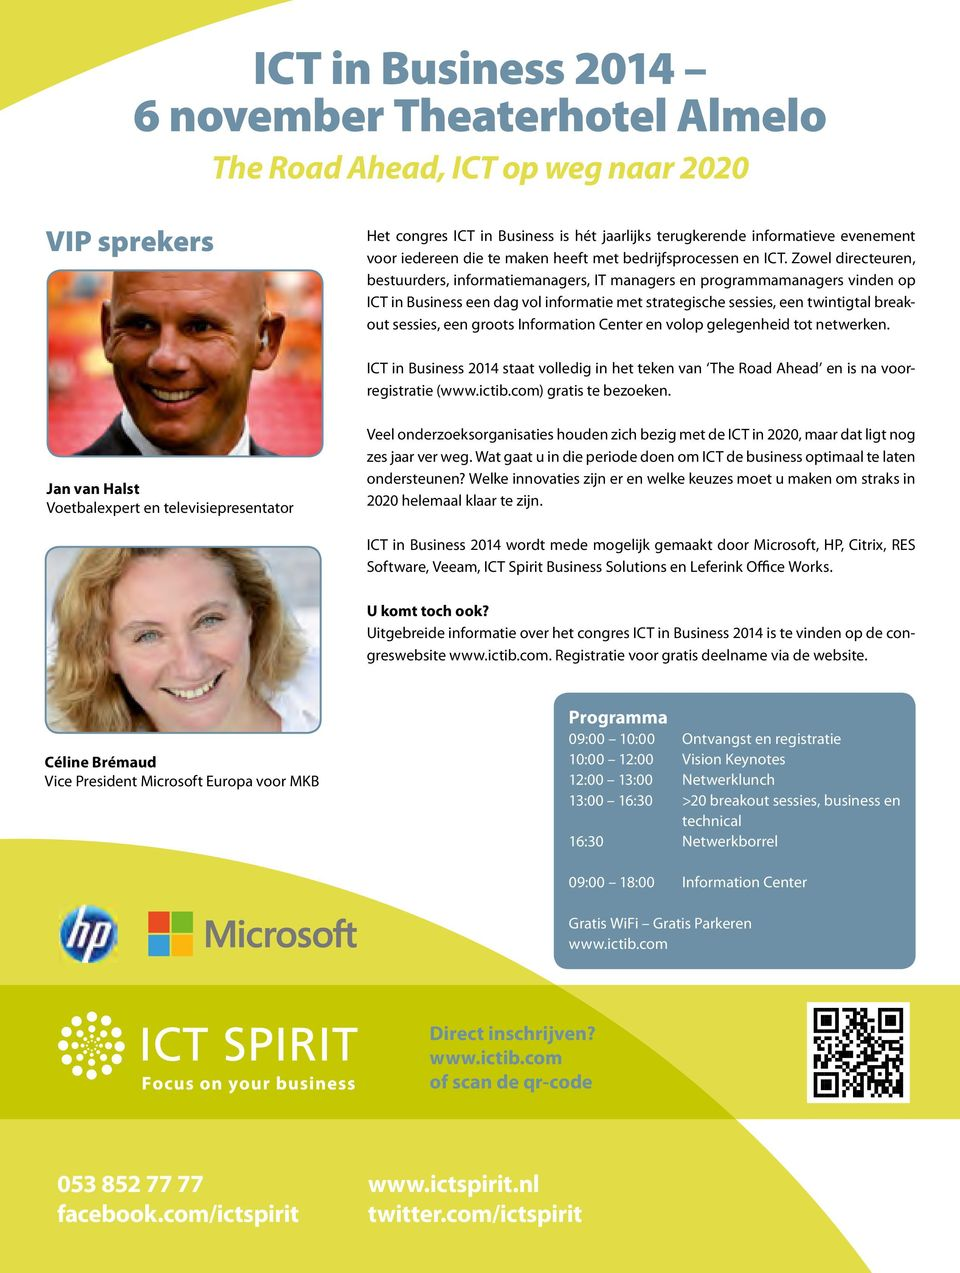 Zowel directeuren, bestuurders, informatiemanagers, IT managers en programmamanagers vinden op ICT in Business een dag vol informatie met strategische sessies, een twintigtal breakout sessies, een